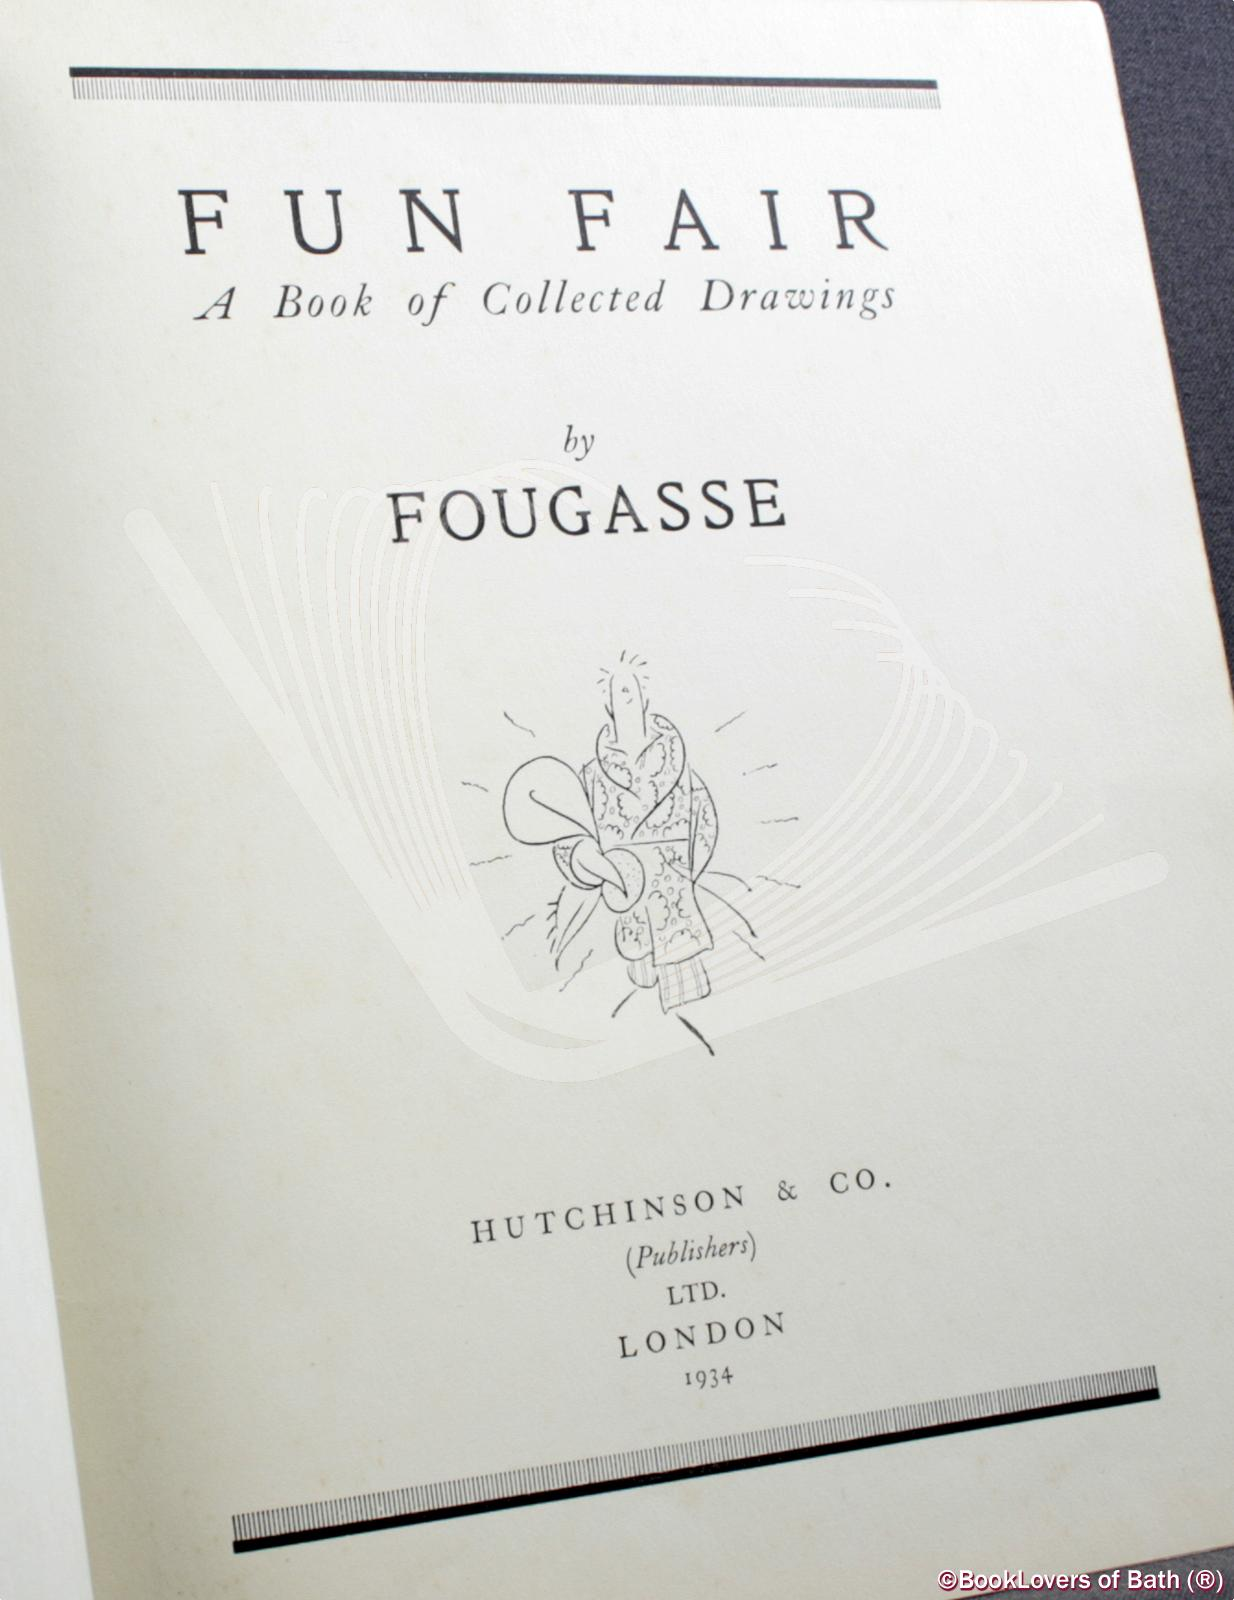 Fun Fair: A Book of Collected Drawings - Fougasse